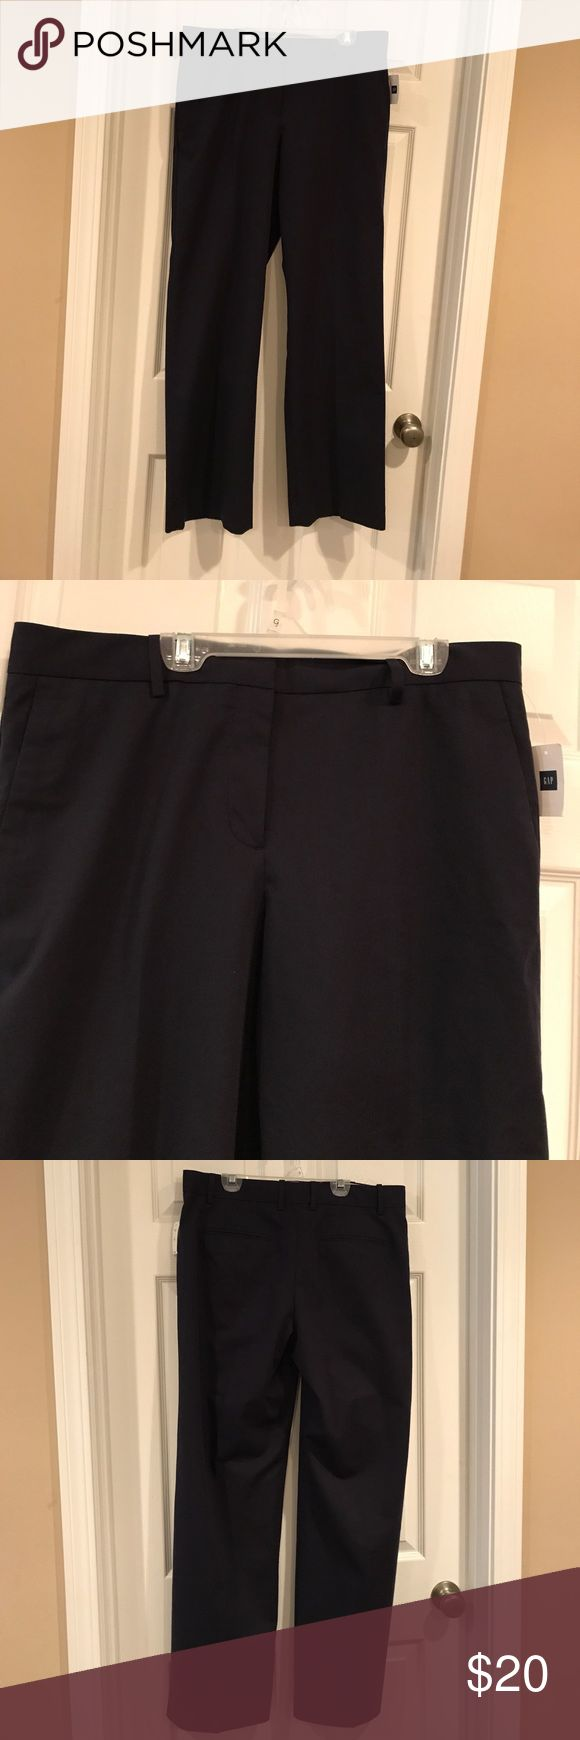 NWT Gap Navy Blue Dress Pants Trousers Sz 12 NWT Gap Navy Blue Dress Pants Trousers Sz 12. Side slit front pockets, zippered front. Measures 18 inches across waist, rise is 11 inches and length is 31 inches. Material is Cotton/ wool blend. GAP Pants Trousers